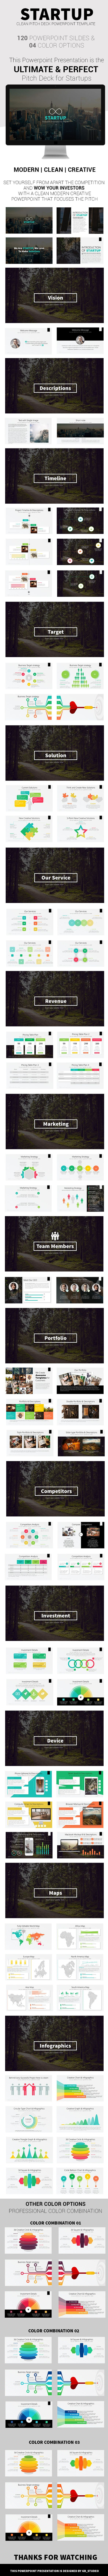 Startup 2018 - Clean Pitch Deck Powerpoint Template | Cleaning ...